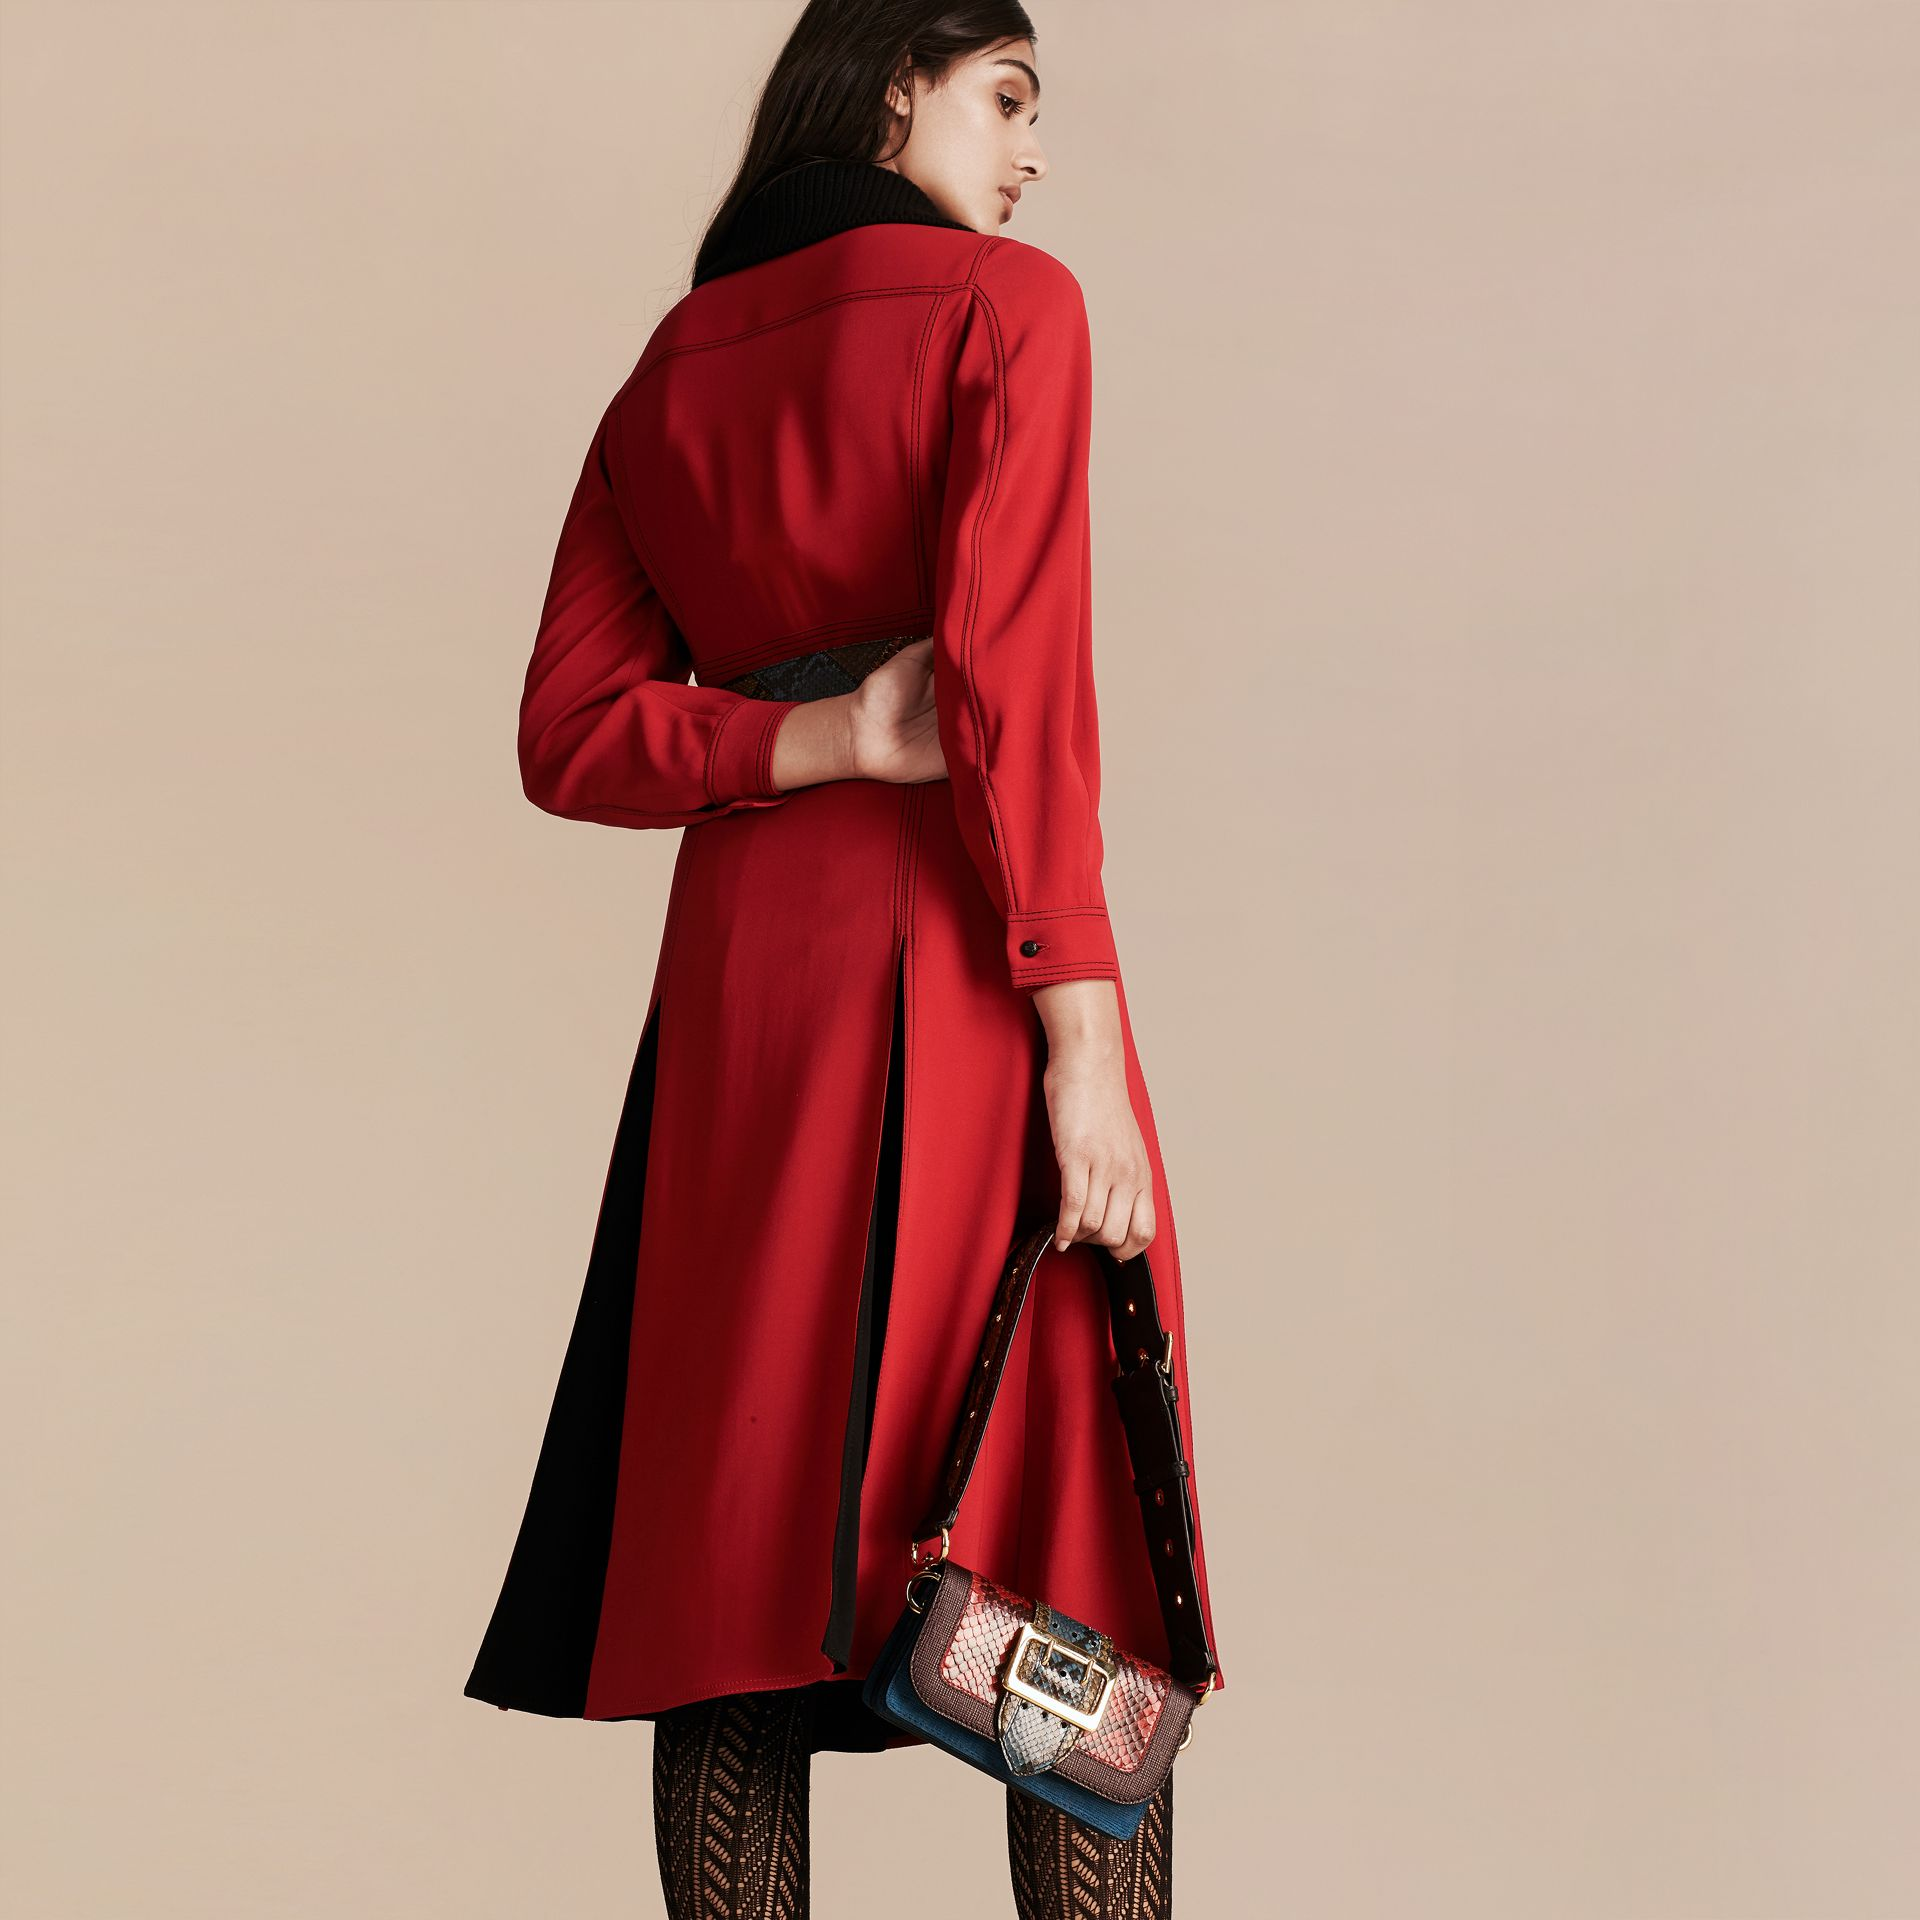 Parade red Georgette Dress with Detachable Knitted Cashmere Collar - gallery image 3